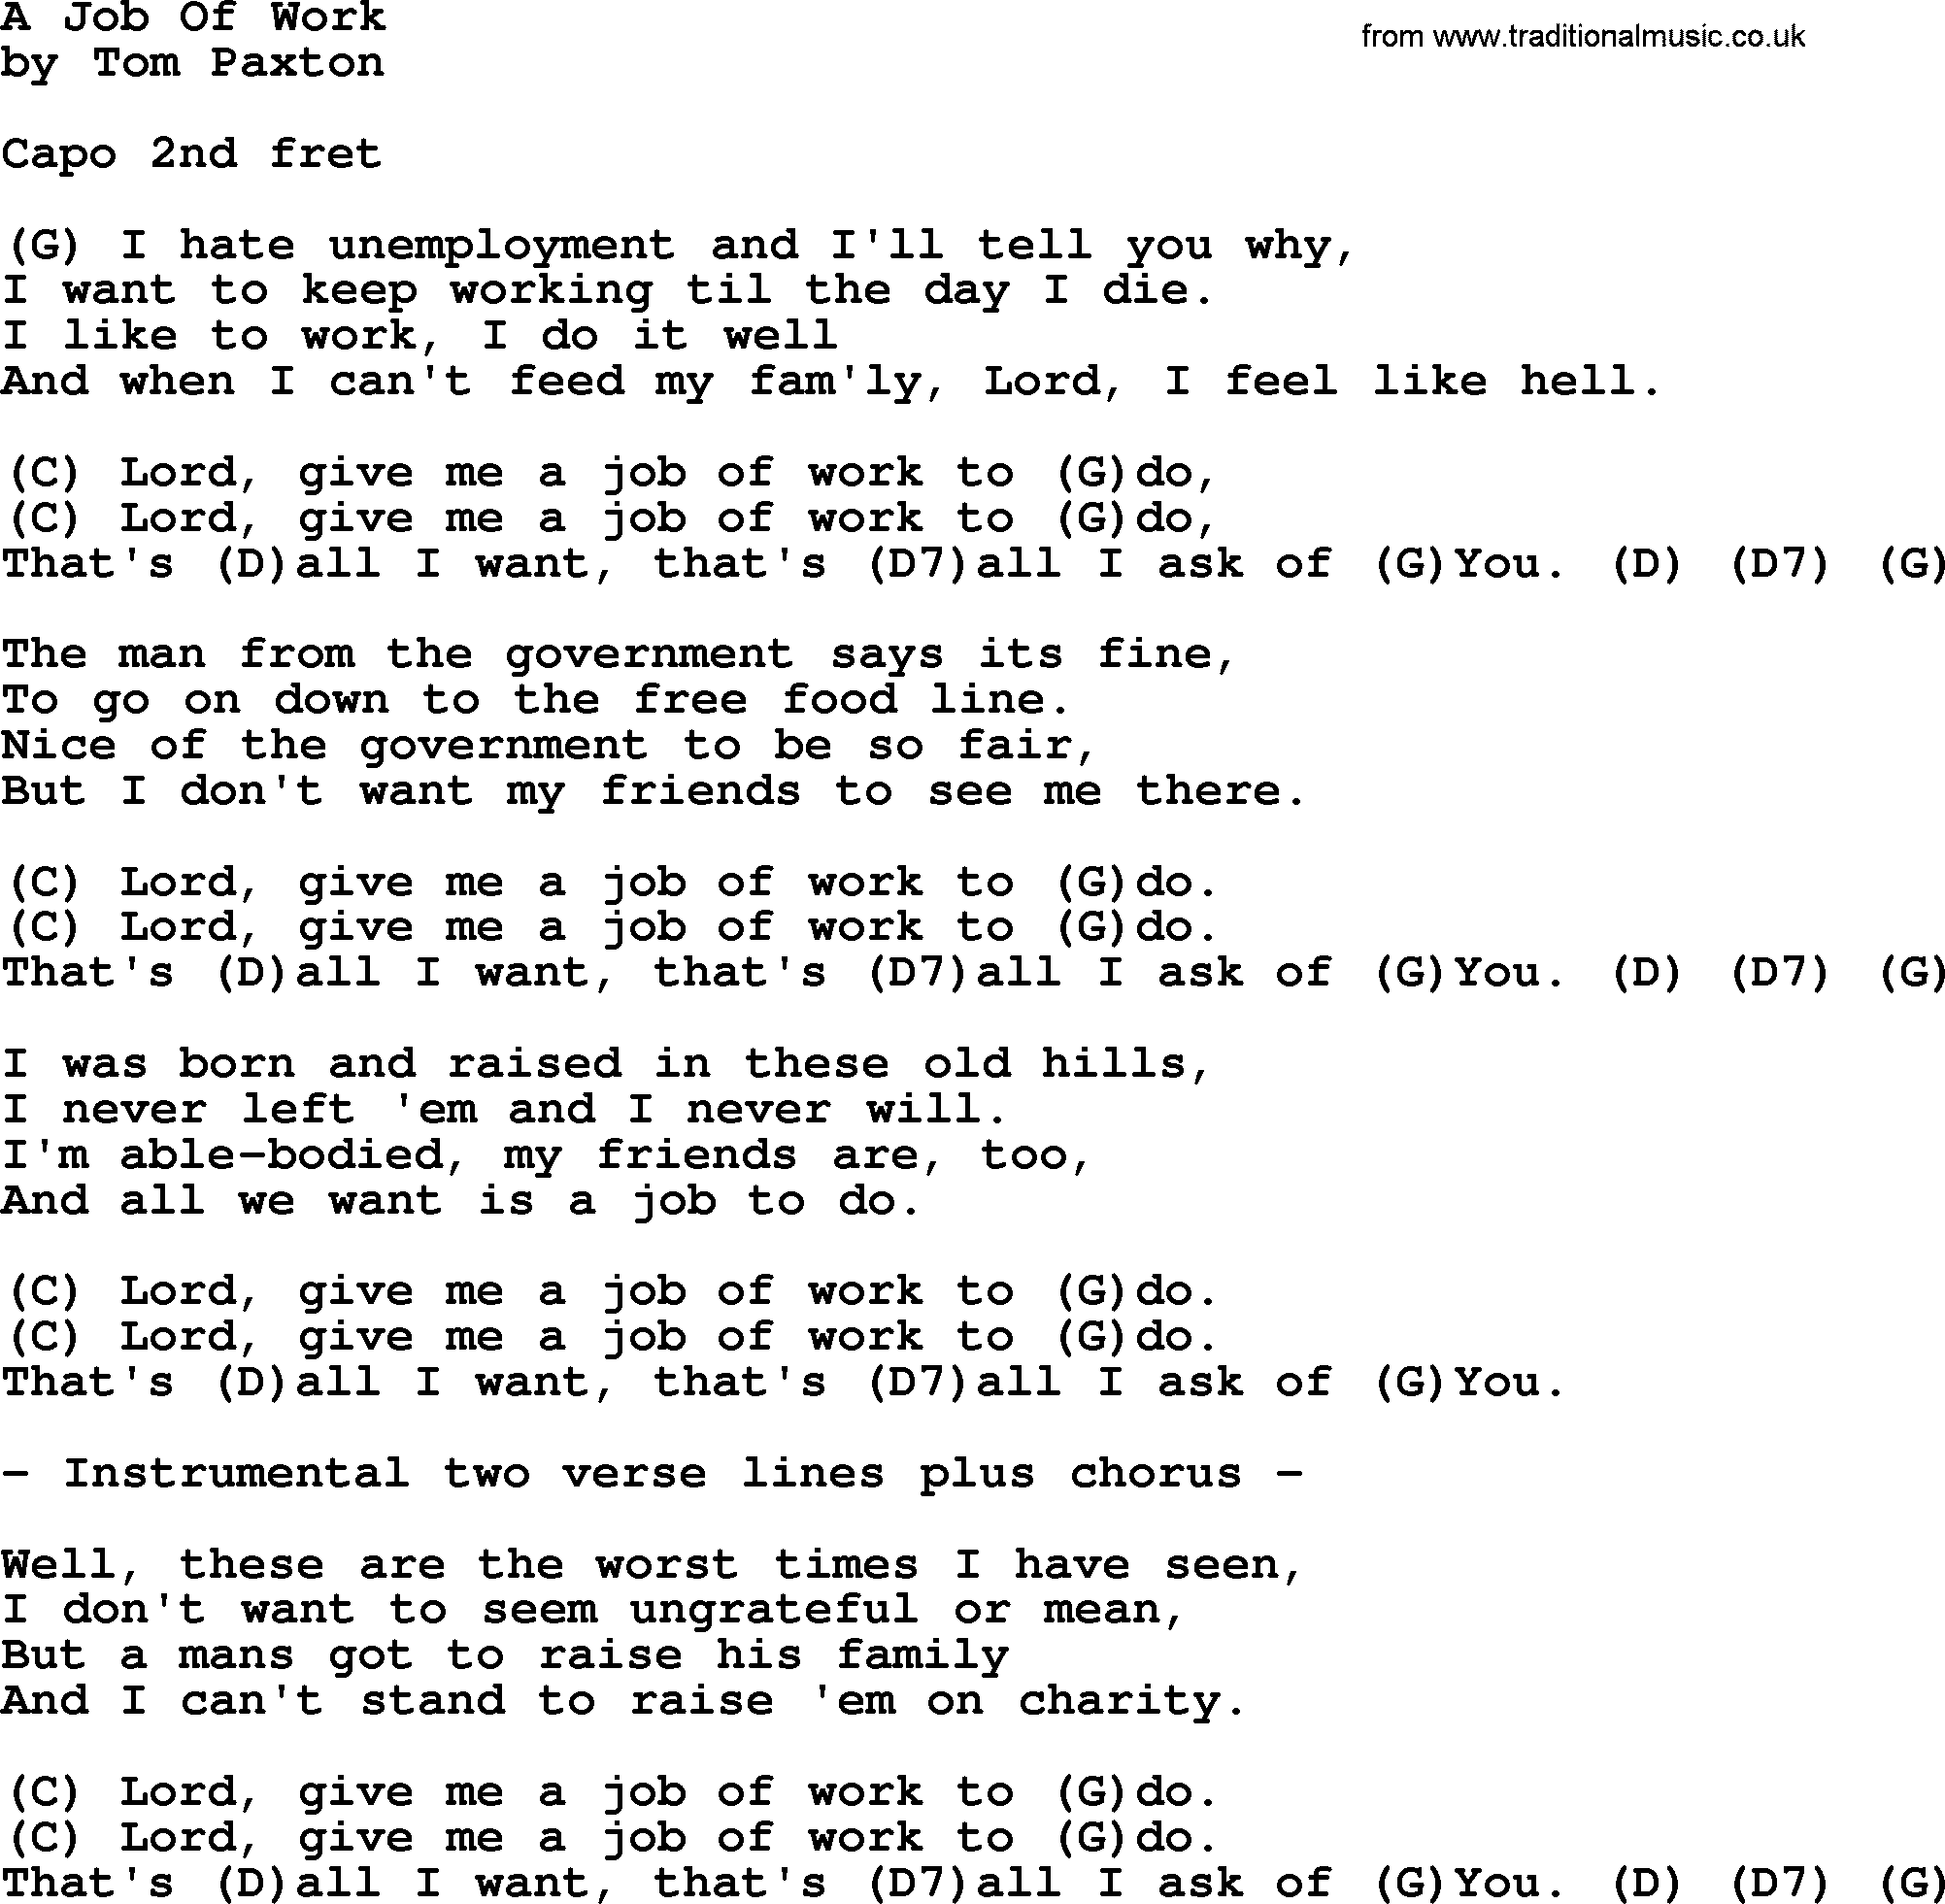 a job of work by tom paxton lyrics and chords tom paxton song a job of work lyrics and chords